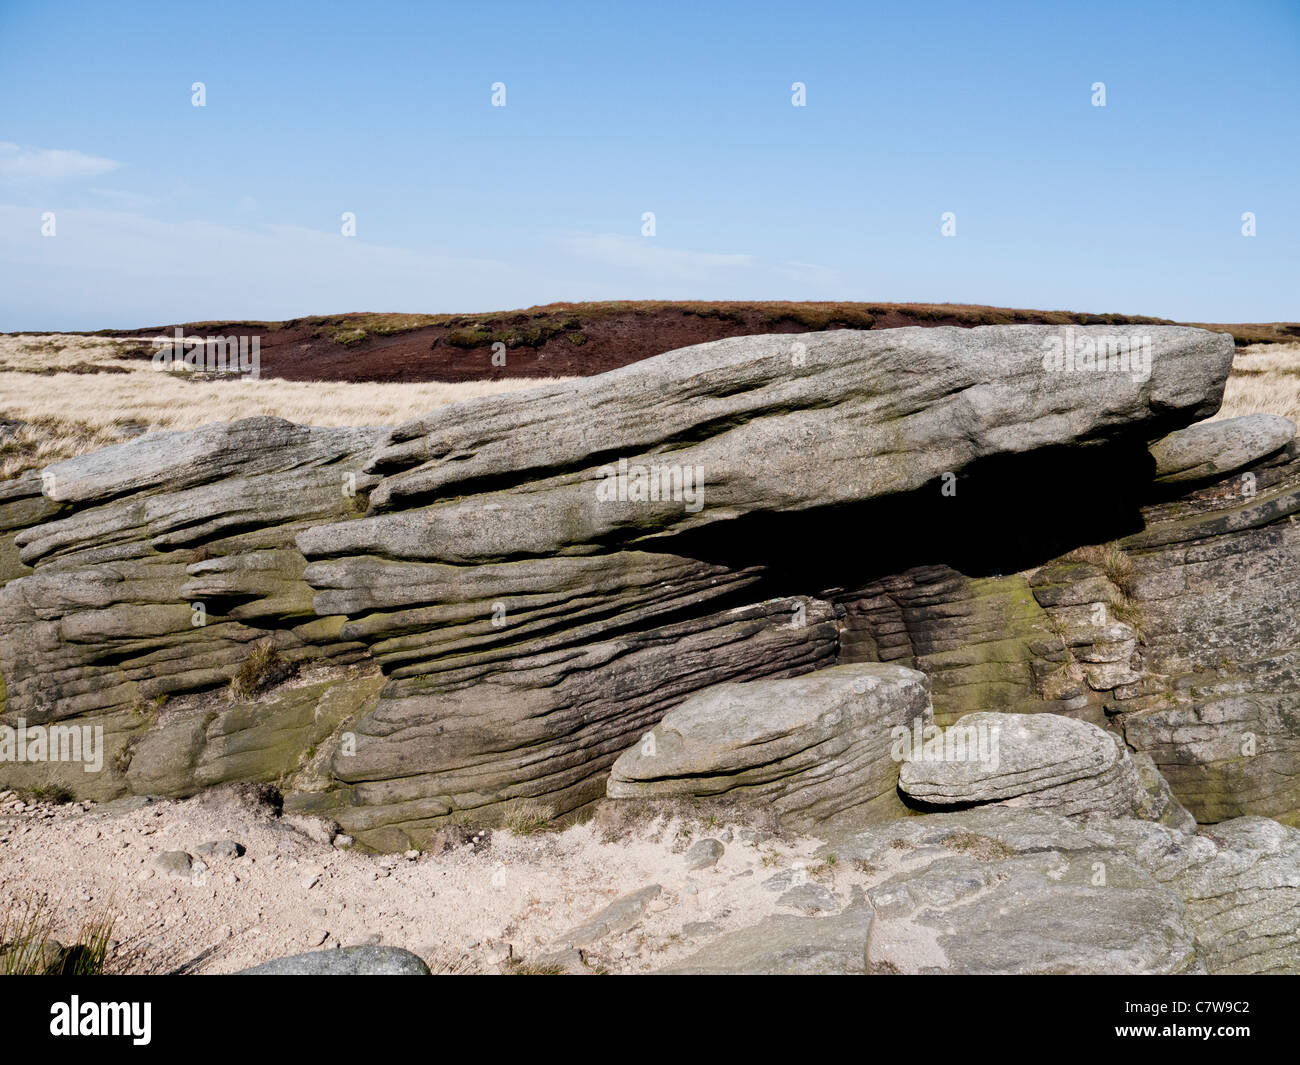 Gritstone eroded by weather, Kinder Scout, High Peak, Derbyshire, England, UK. - Stock Image